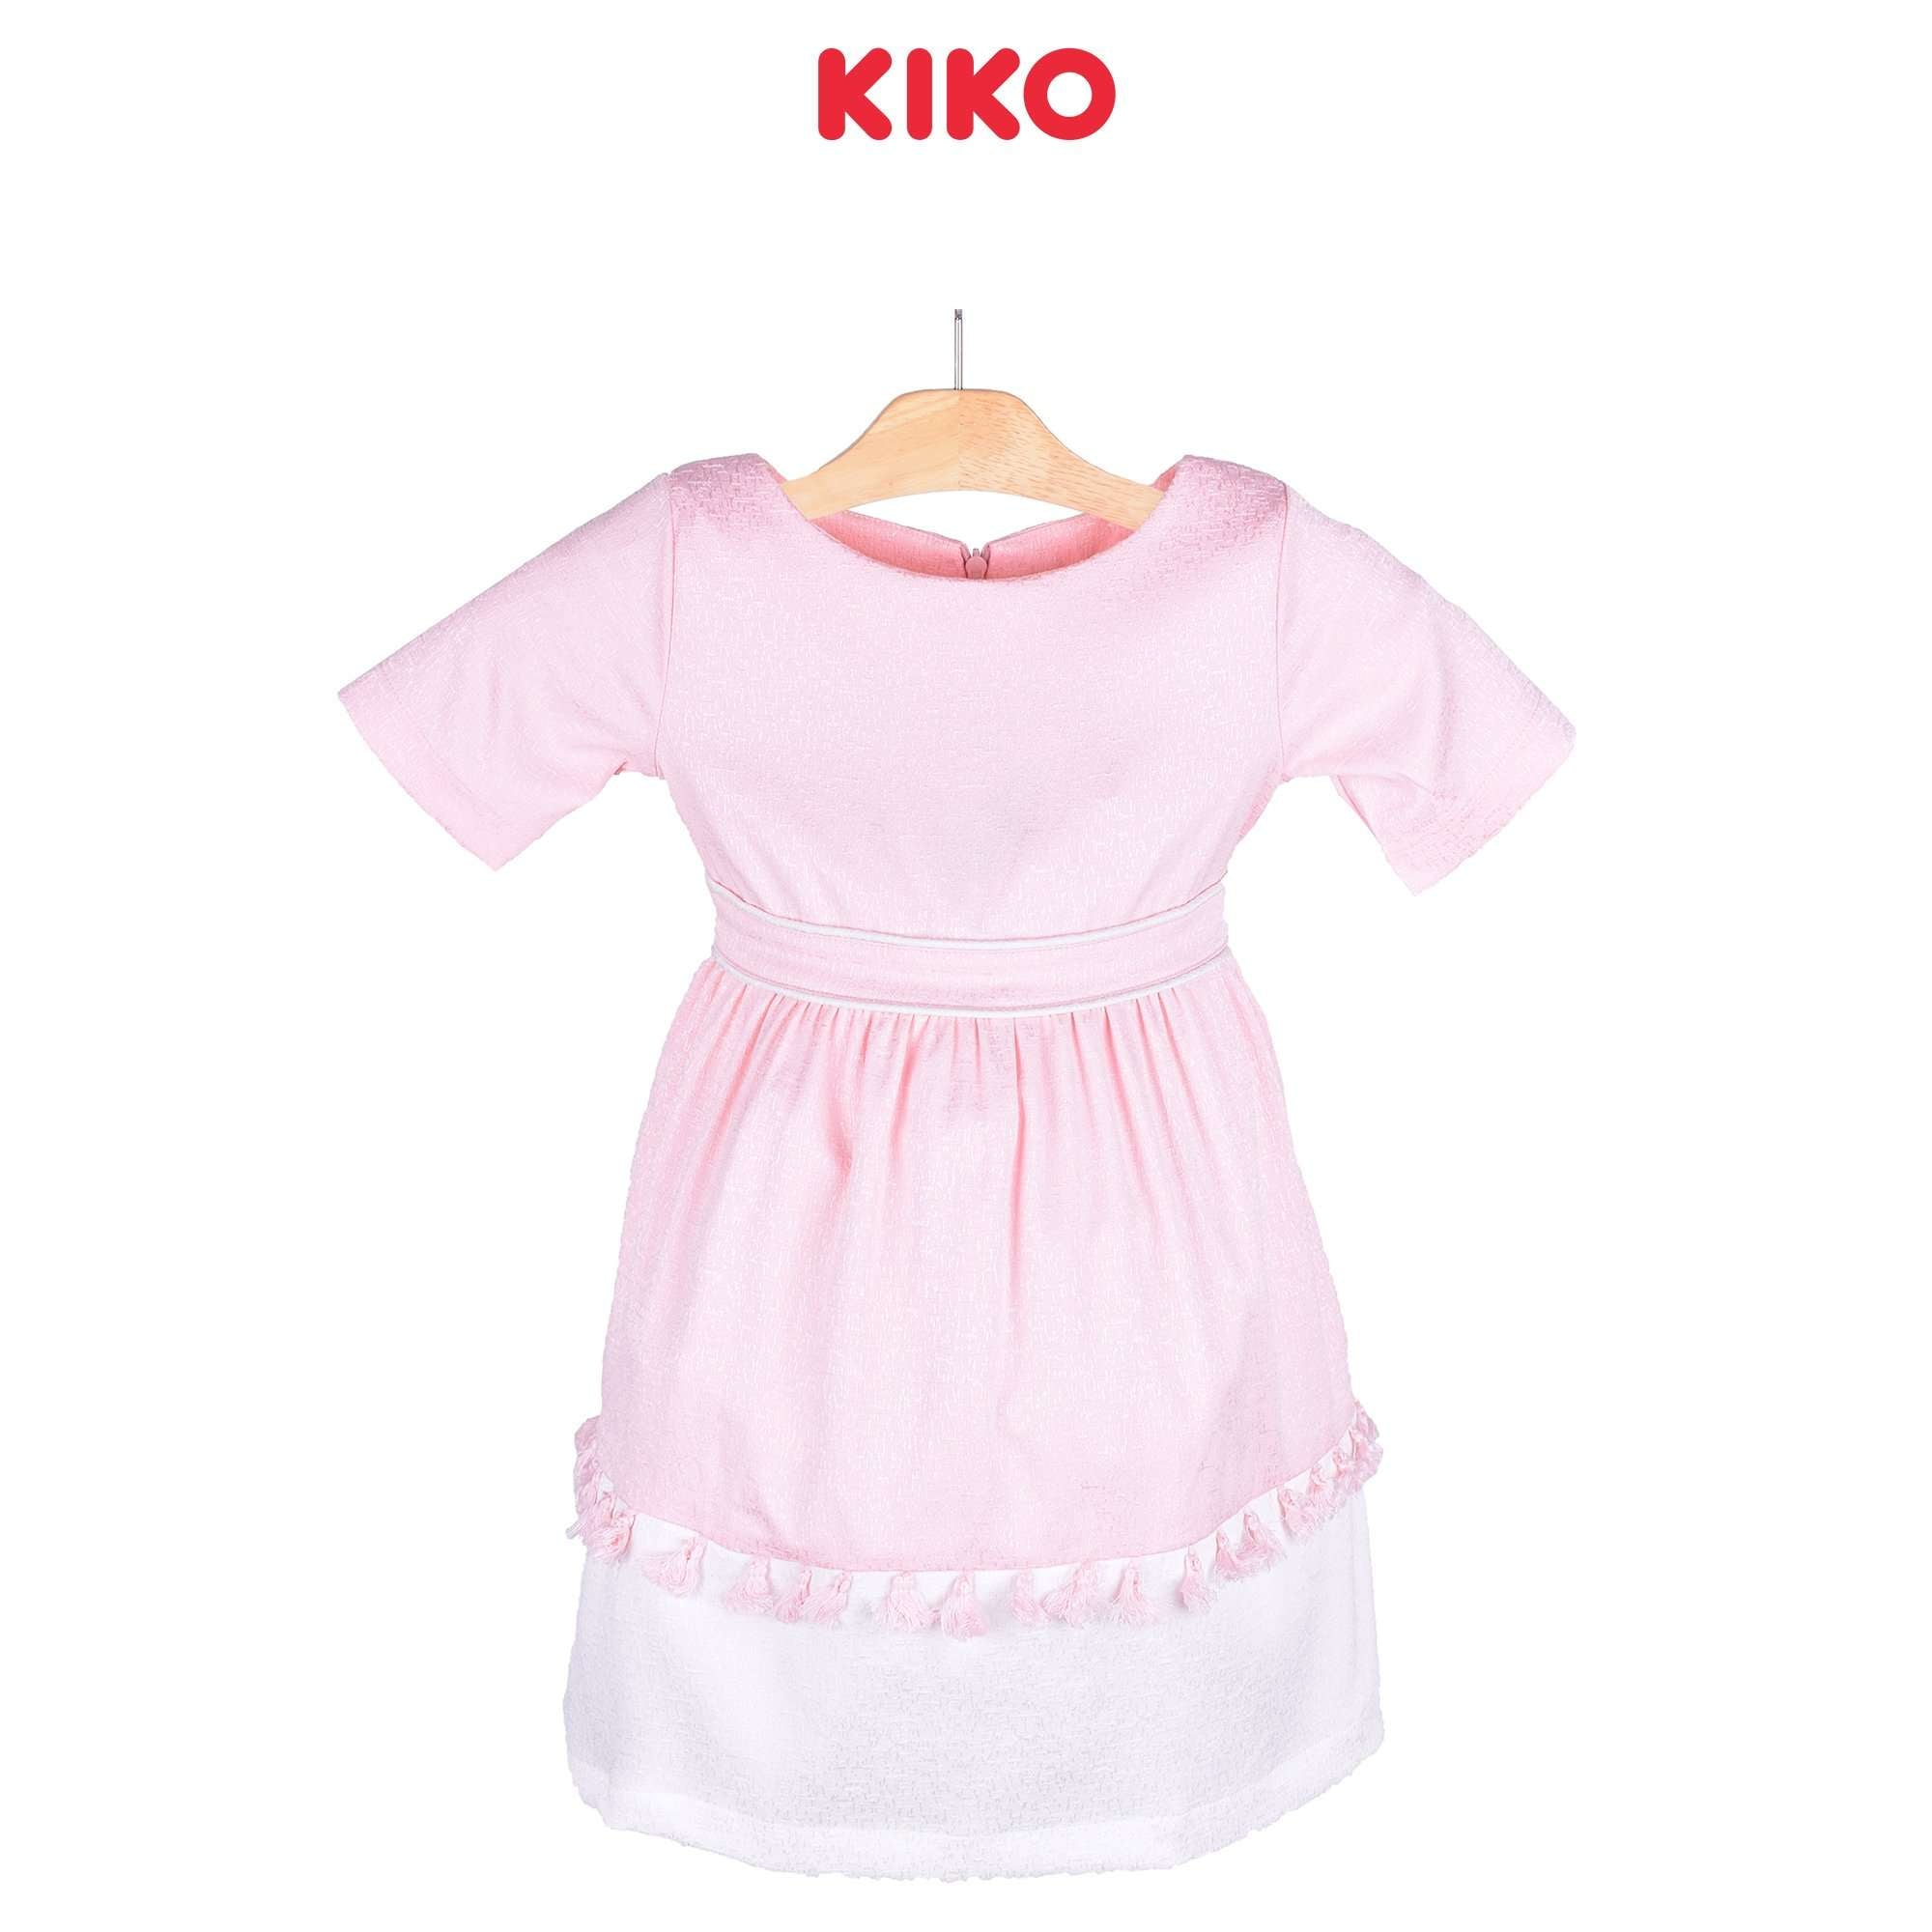 KIKO Girl Short Sleeve Dress - Pink 115059-312 : Buy KIKO online at CMG.MY